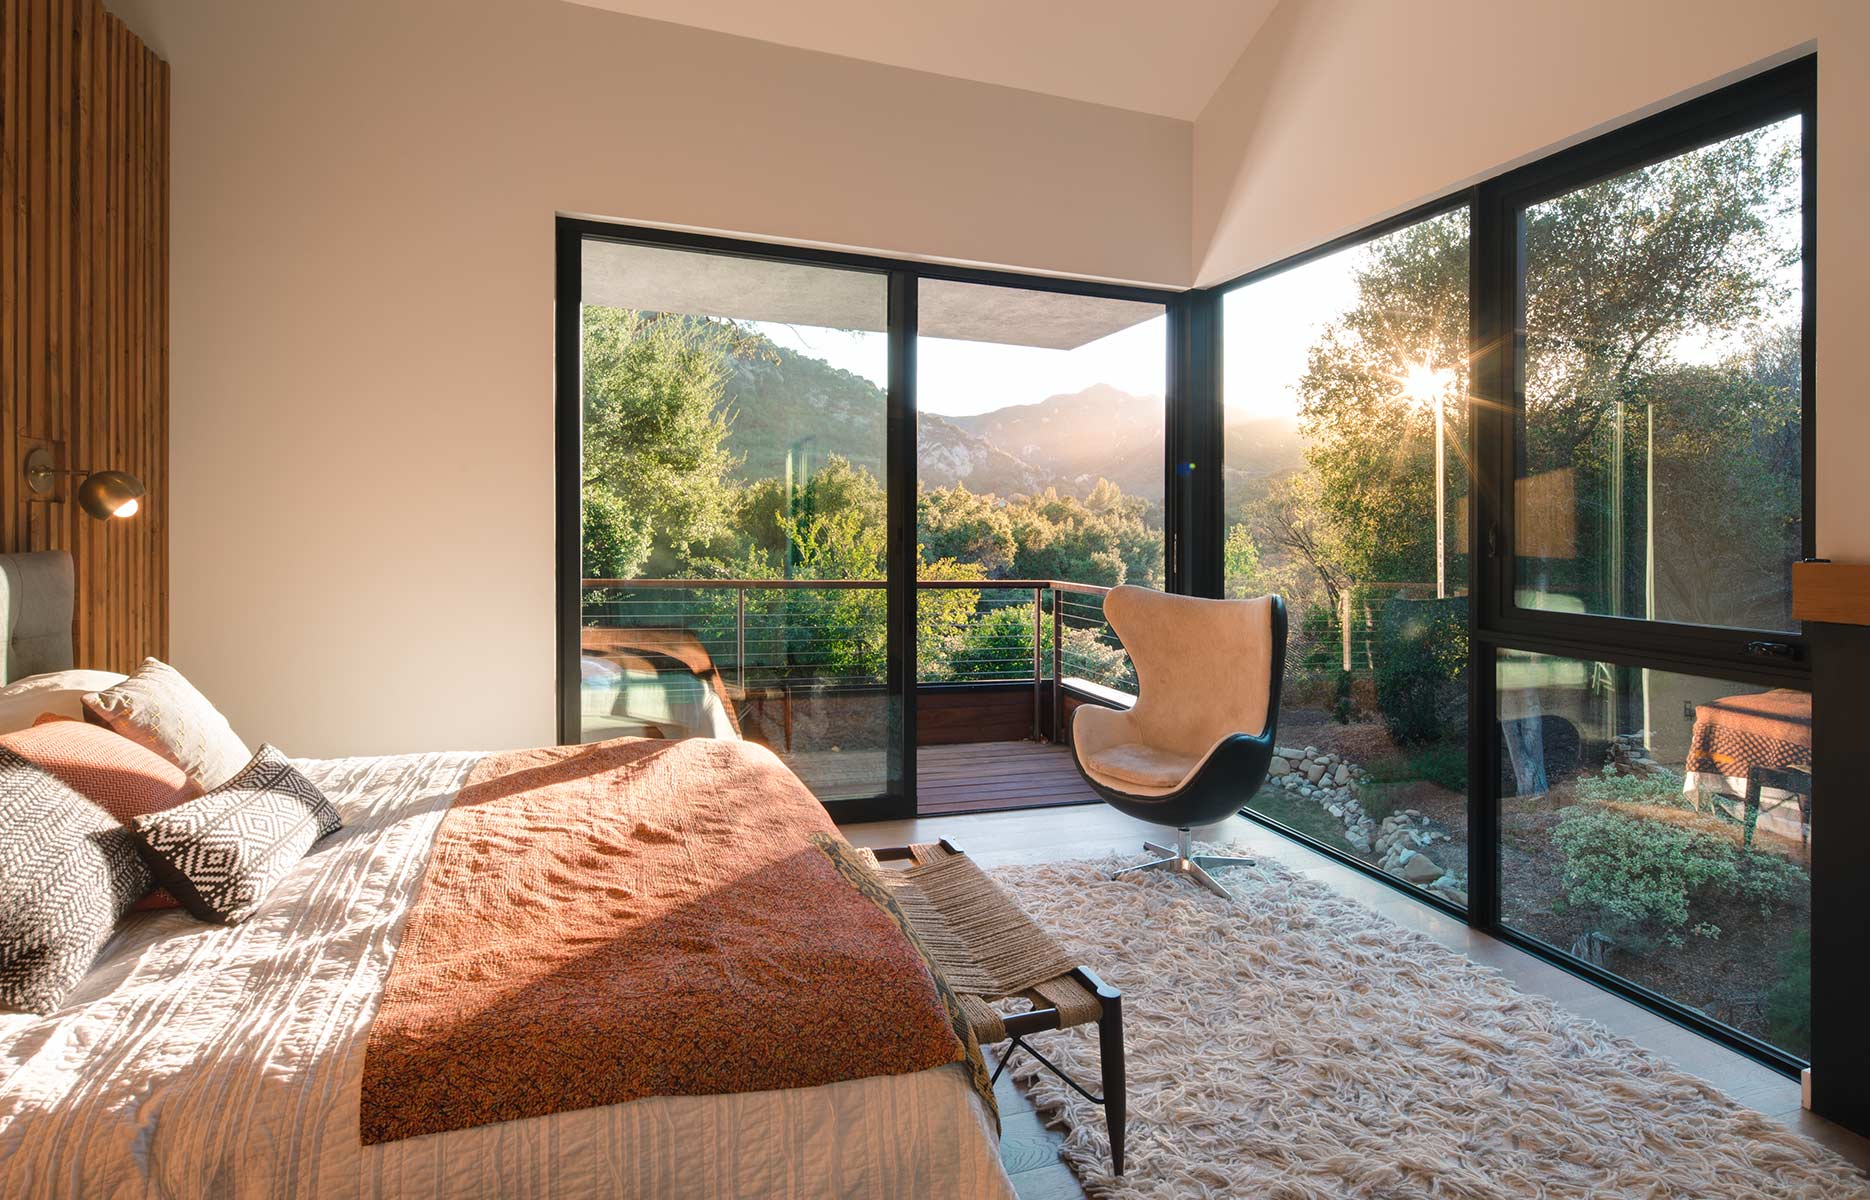 Windowed Wall Trend: The Great Escape To The World Outside! ⛰️ windowed wall Windowed Wall Trend: The Great Escape To The World Outside! ⛰️ 11 3